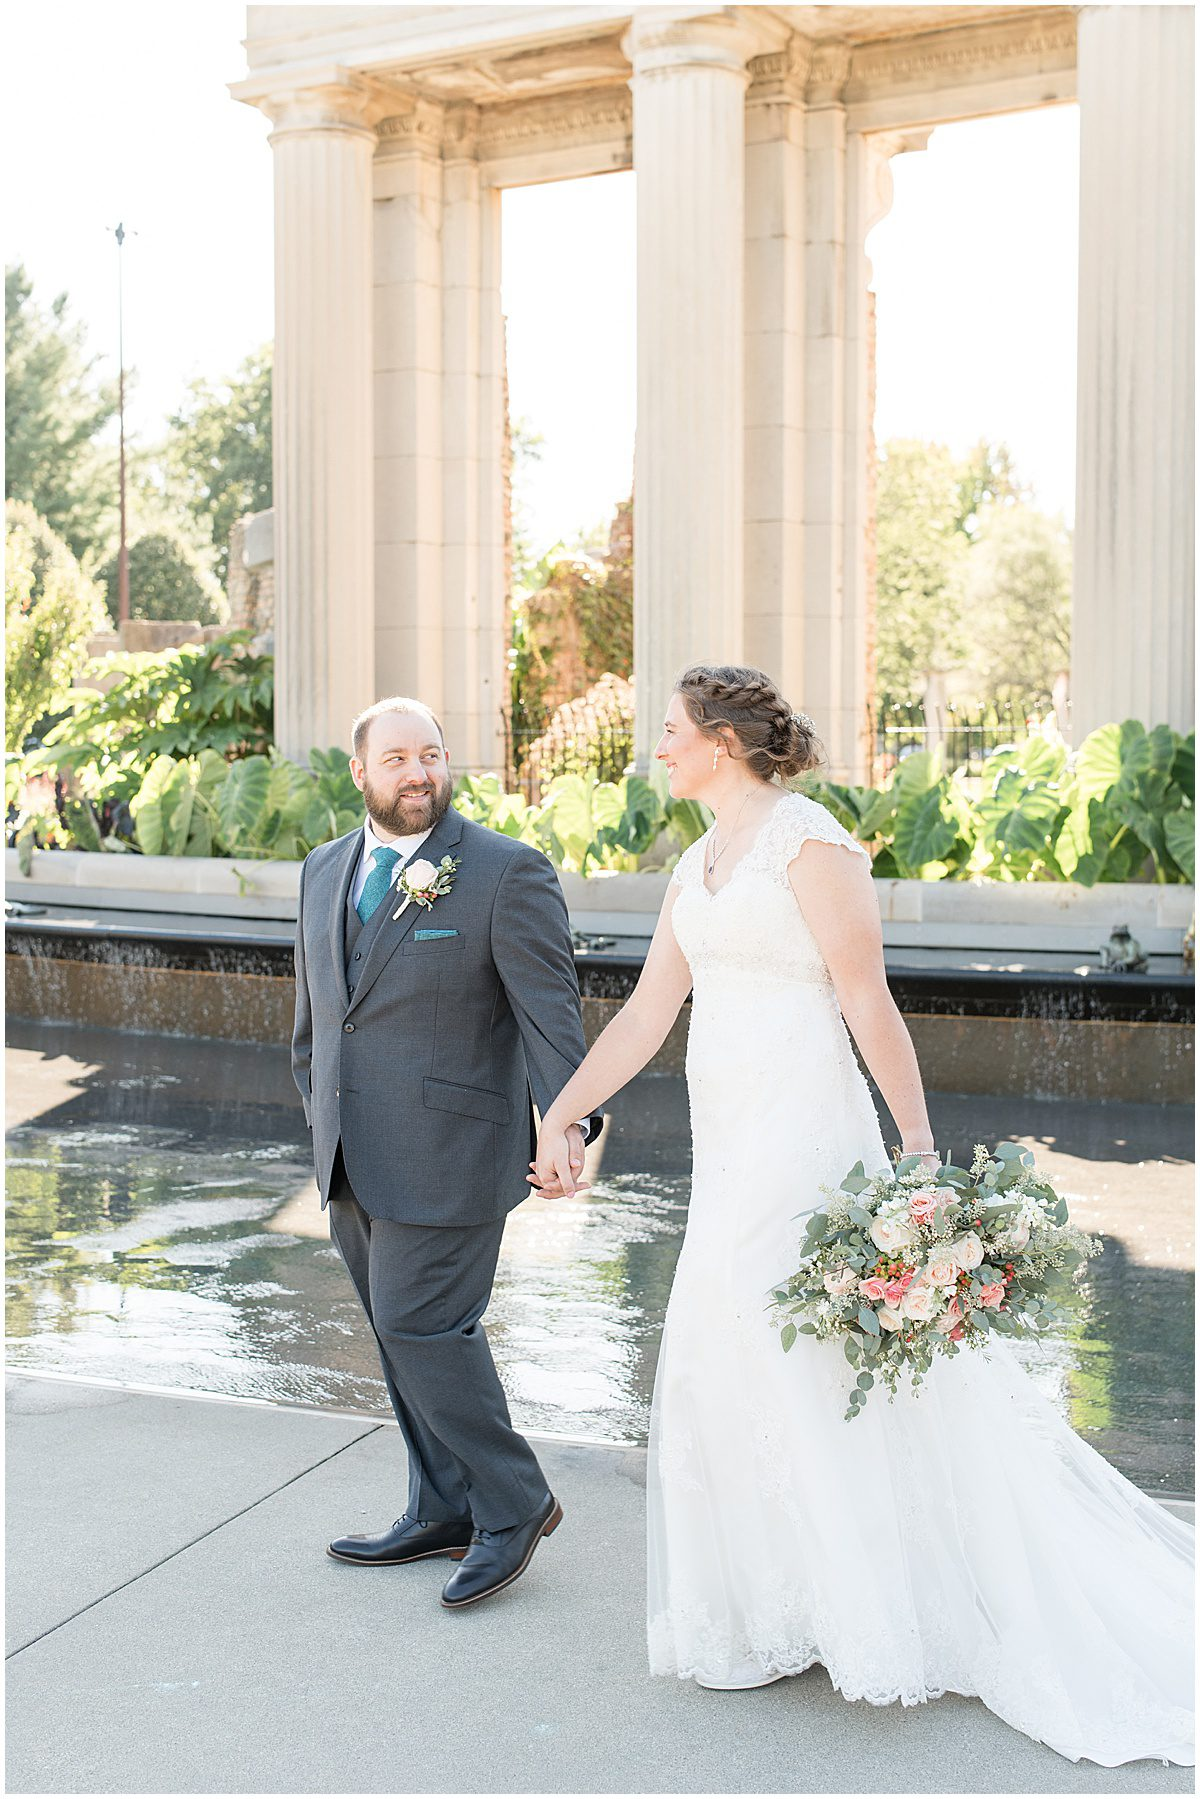 Couple photos for intimate wedding at Holliday Park in Indianapolis